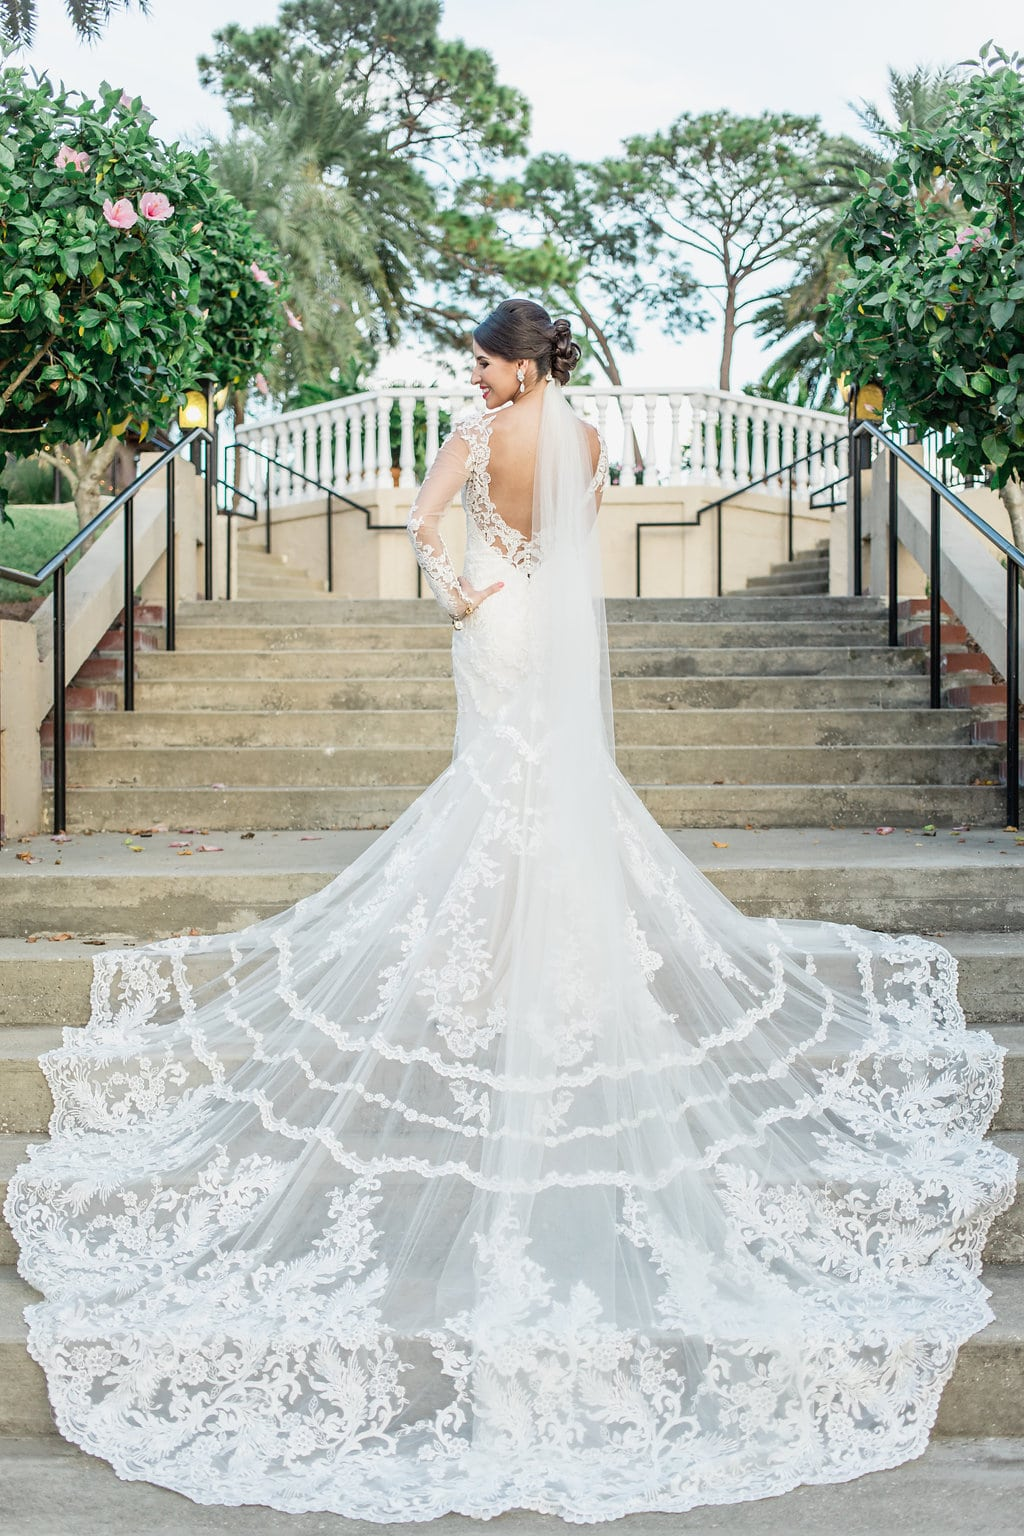 Stunning intricate lace train spread out on staircase